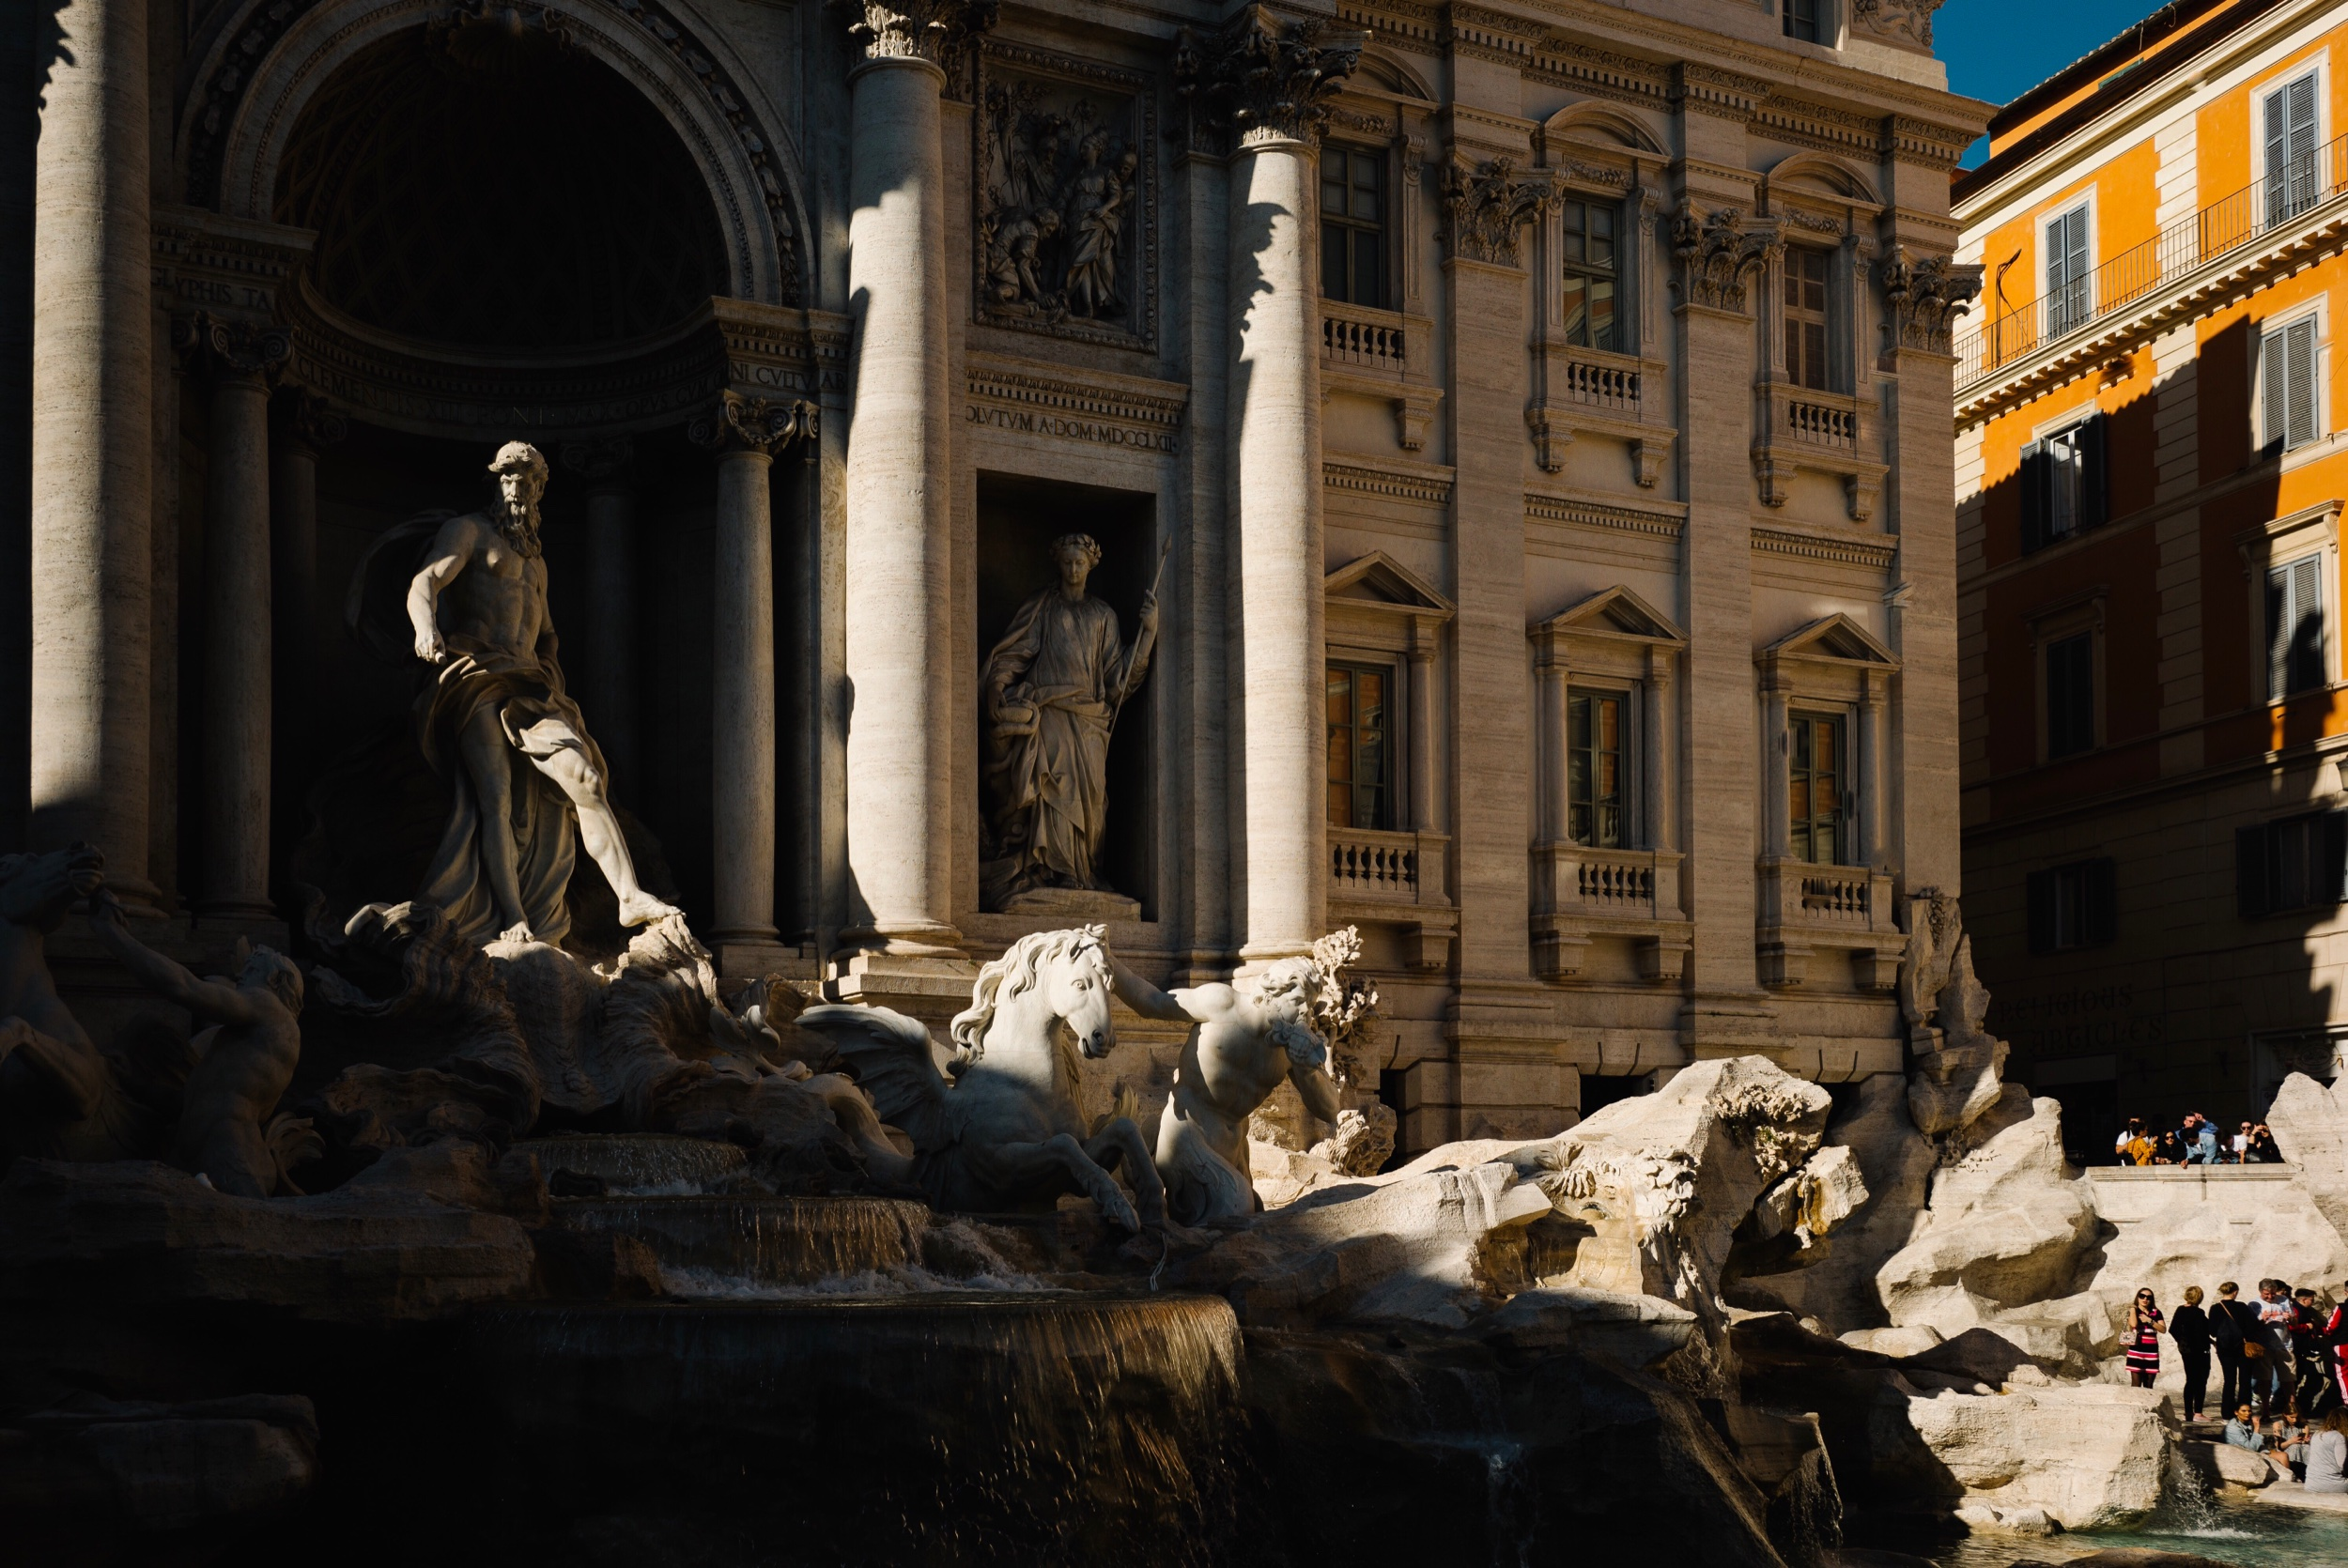 Trevi Fountain - Clifford Darby 2019